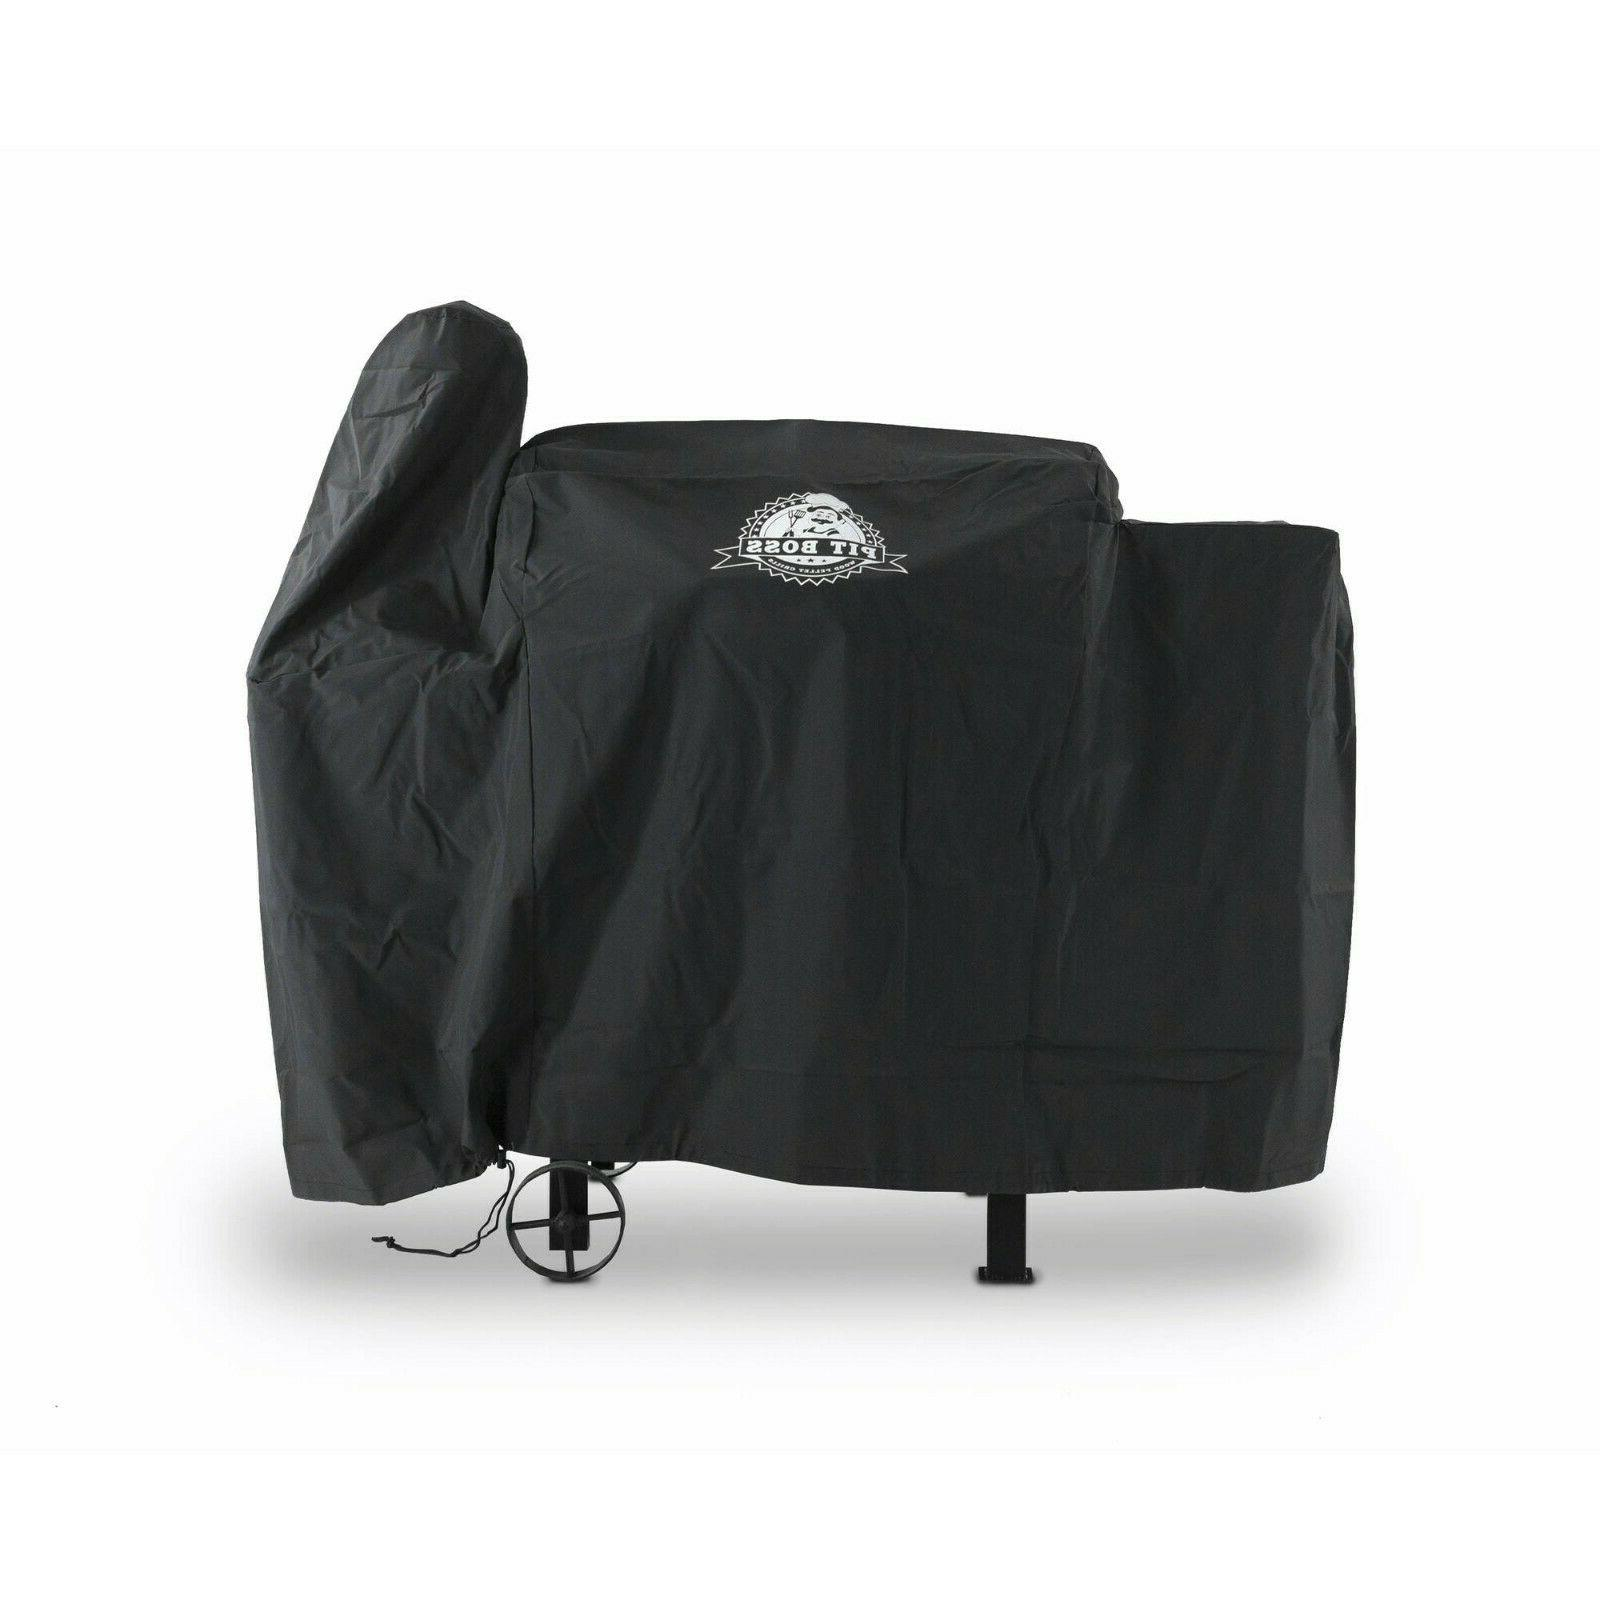 grill cover for 820 series pellet grill